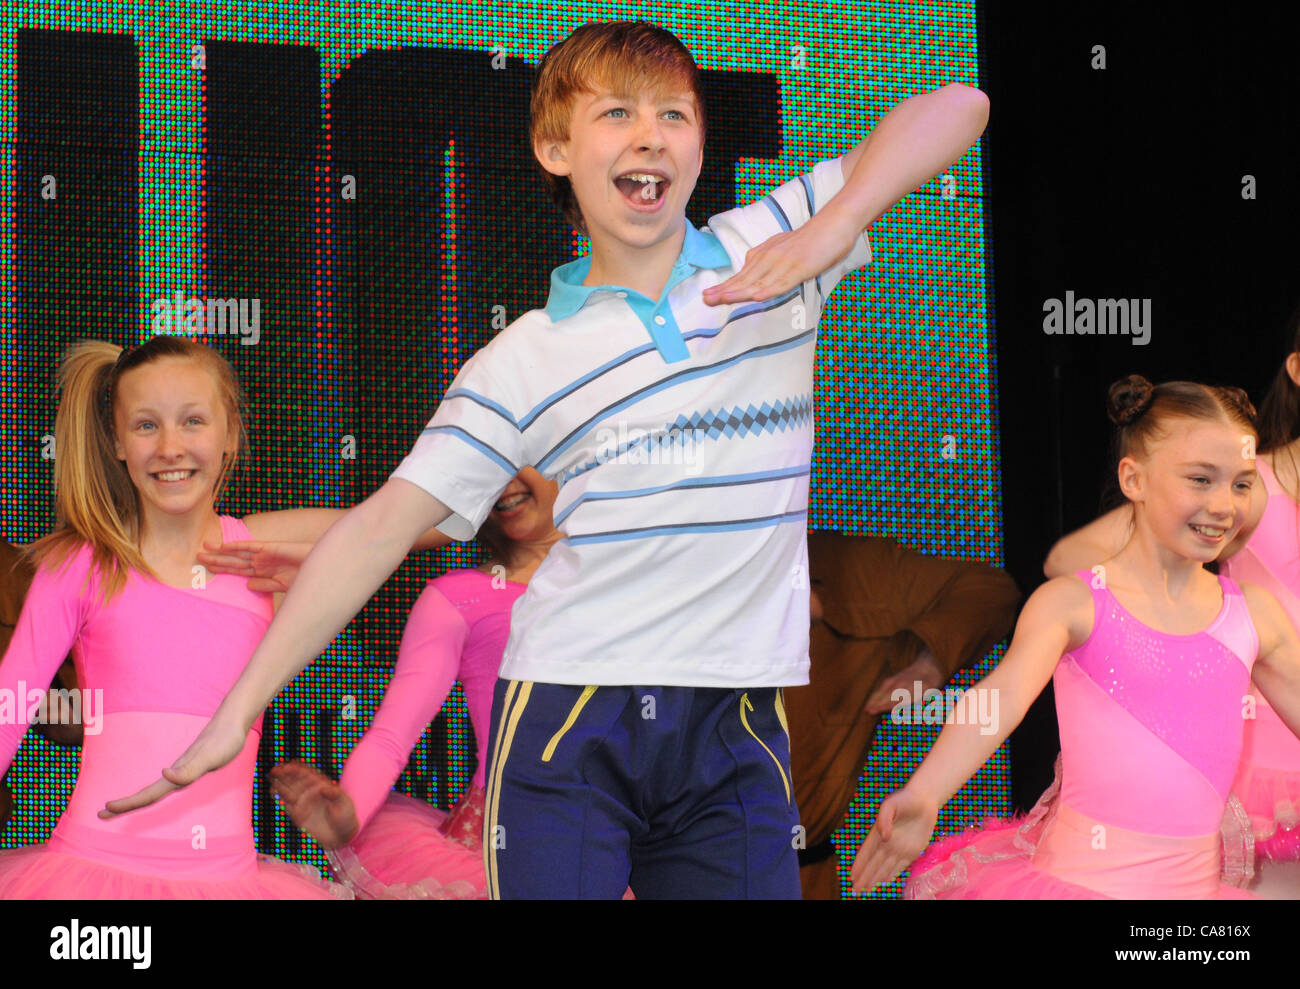 Billy Elliot Cast and Crew - Cast Photos and Info | Fandango